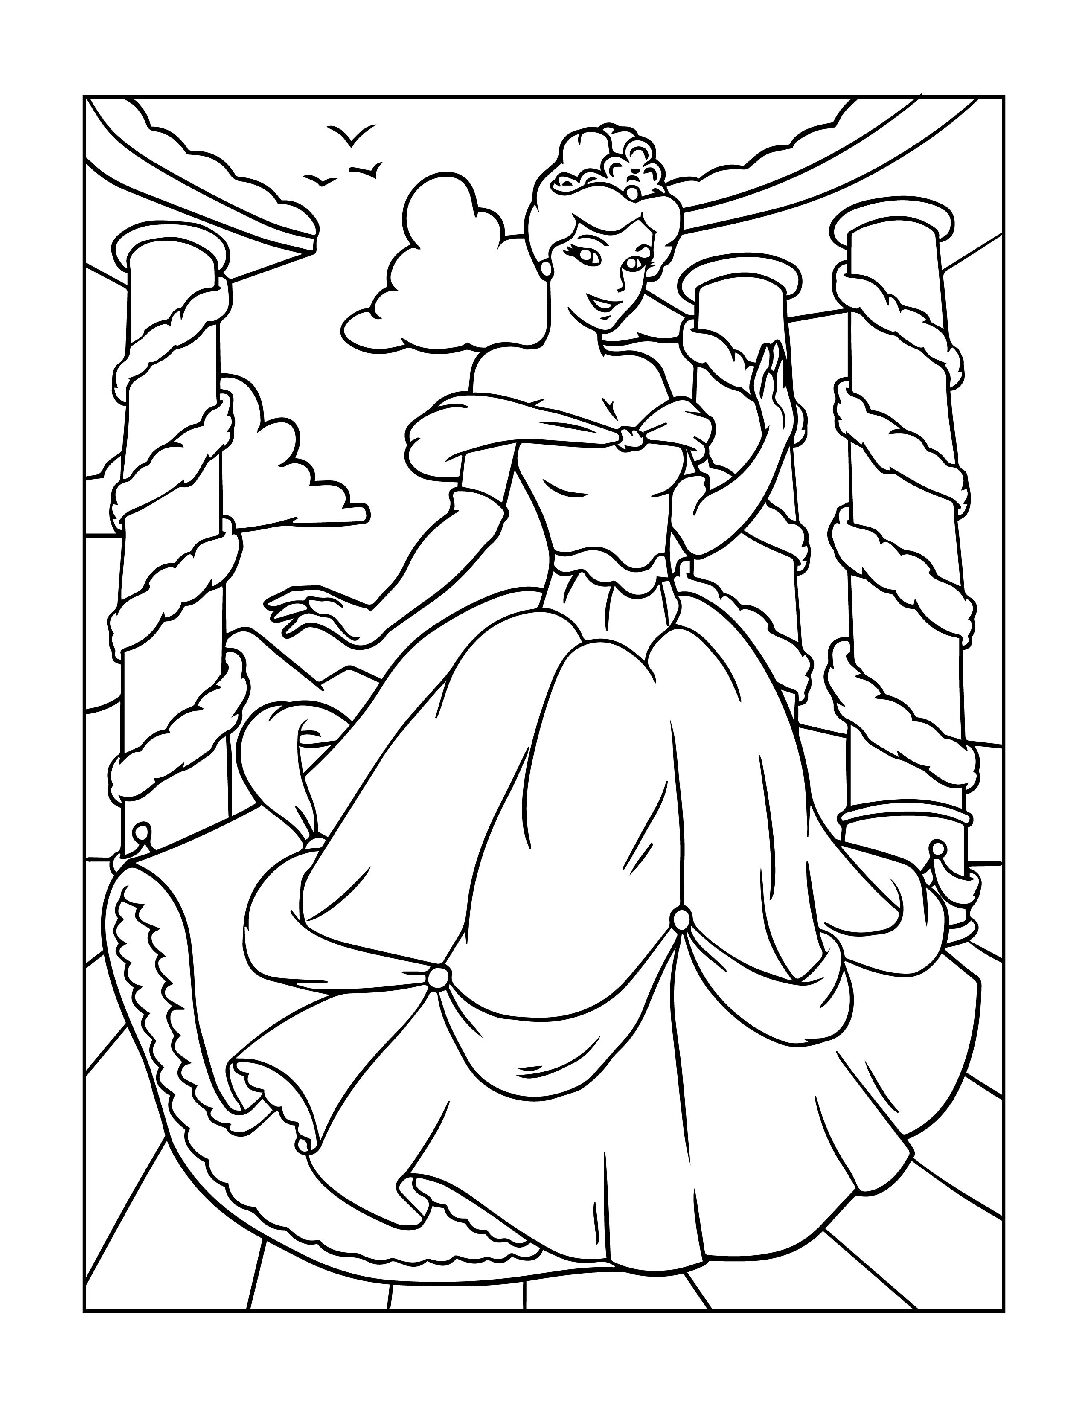 Coloring-Pages-Princess-9-01-pdf Free Printable Princesses Colouring Pages